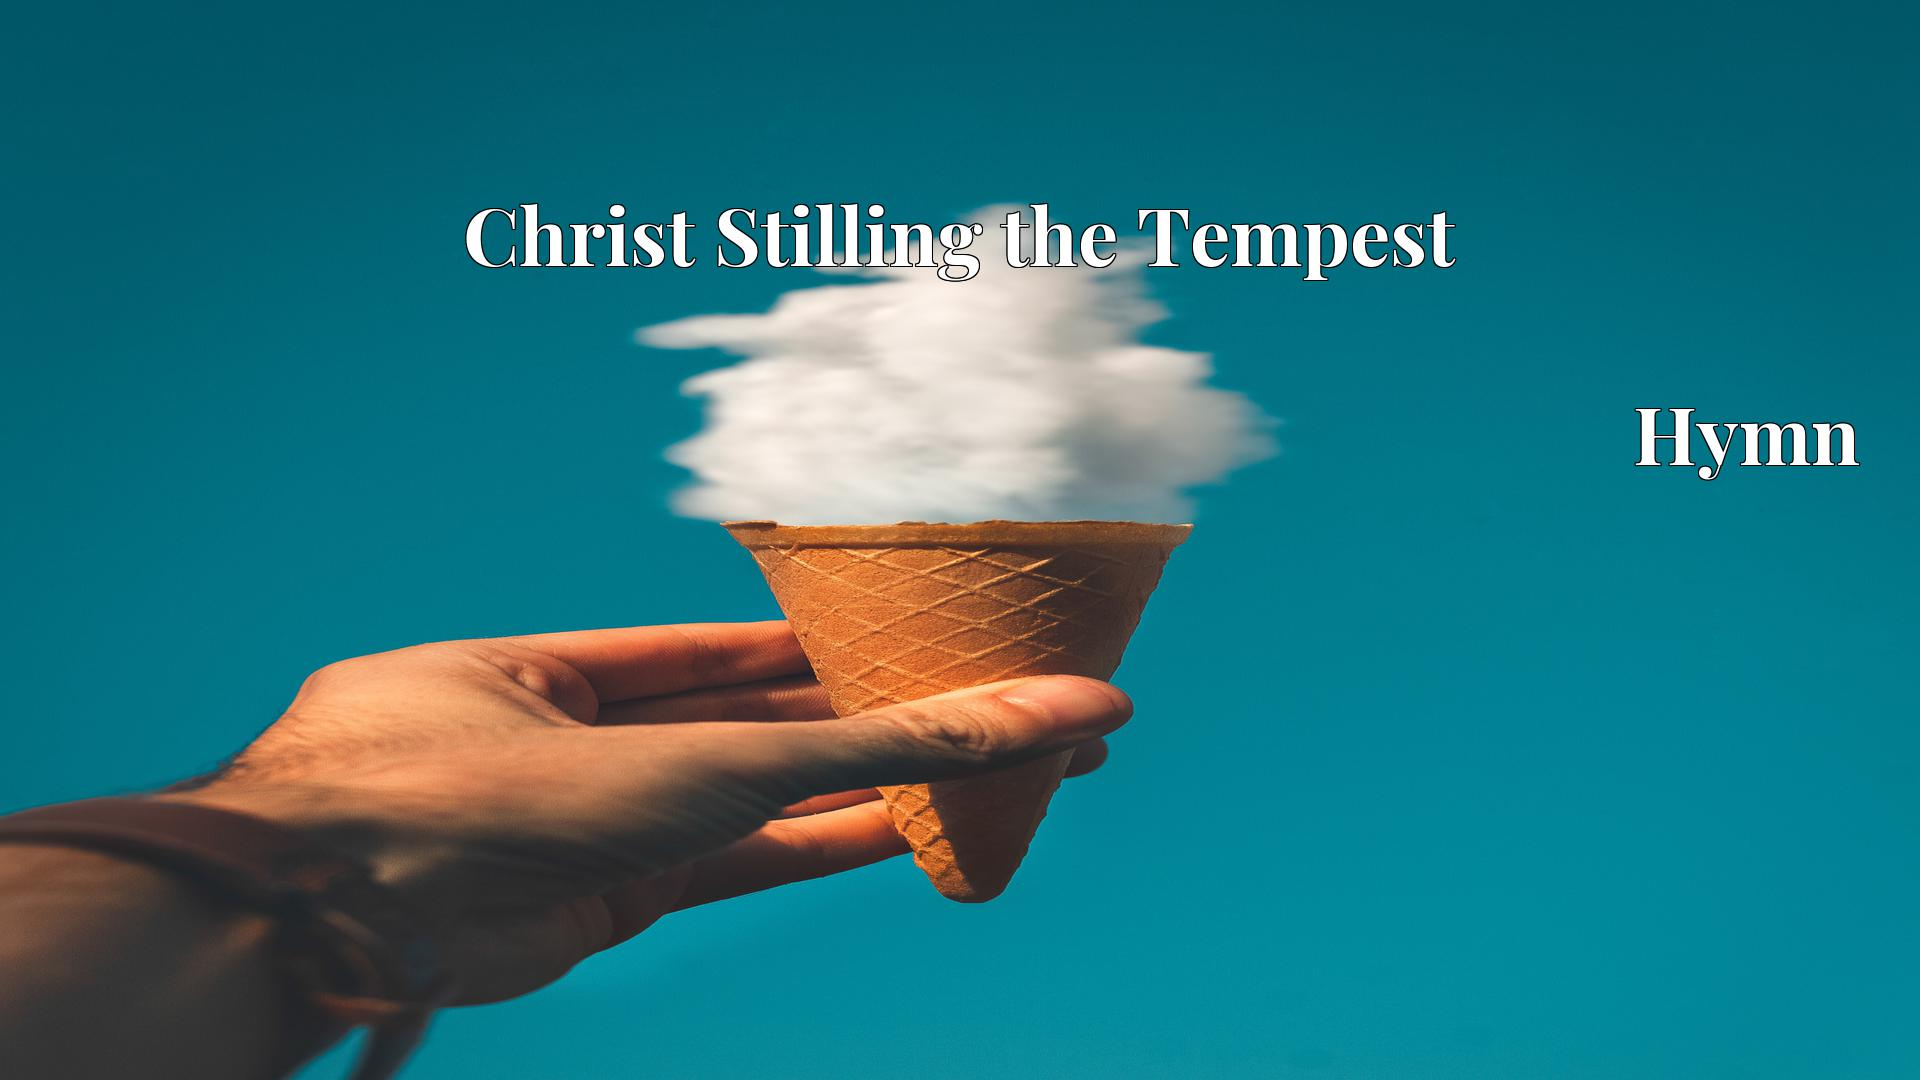 Christ Stilling the Tempest Hymn